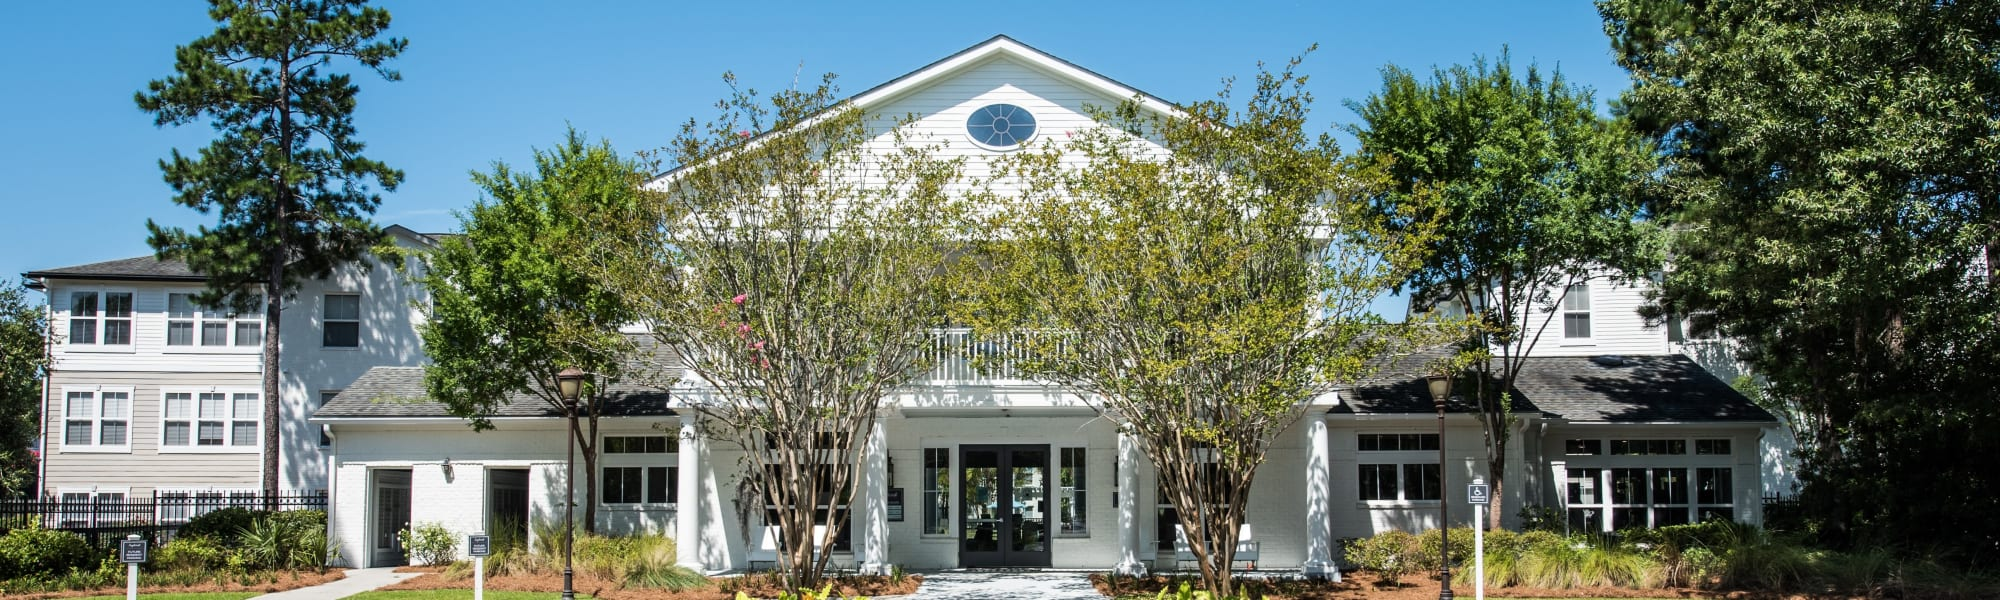 Apply online to Ingleside Apartments in North Charleston, South Carolina